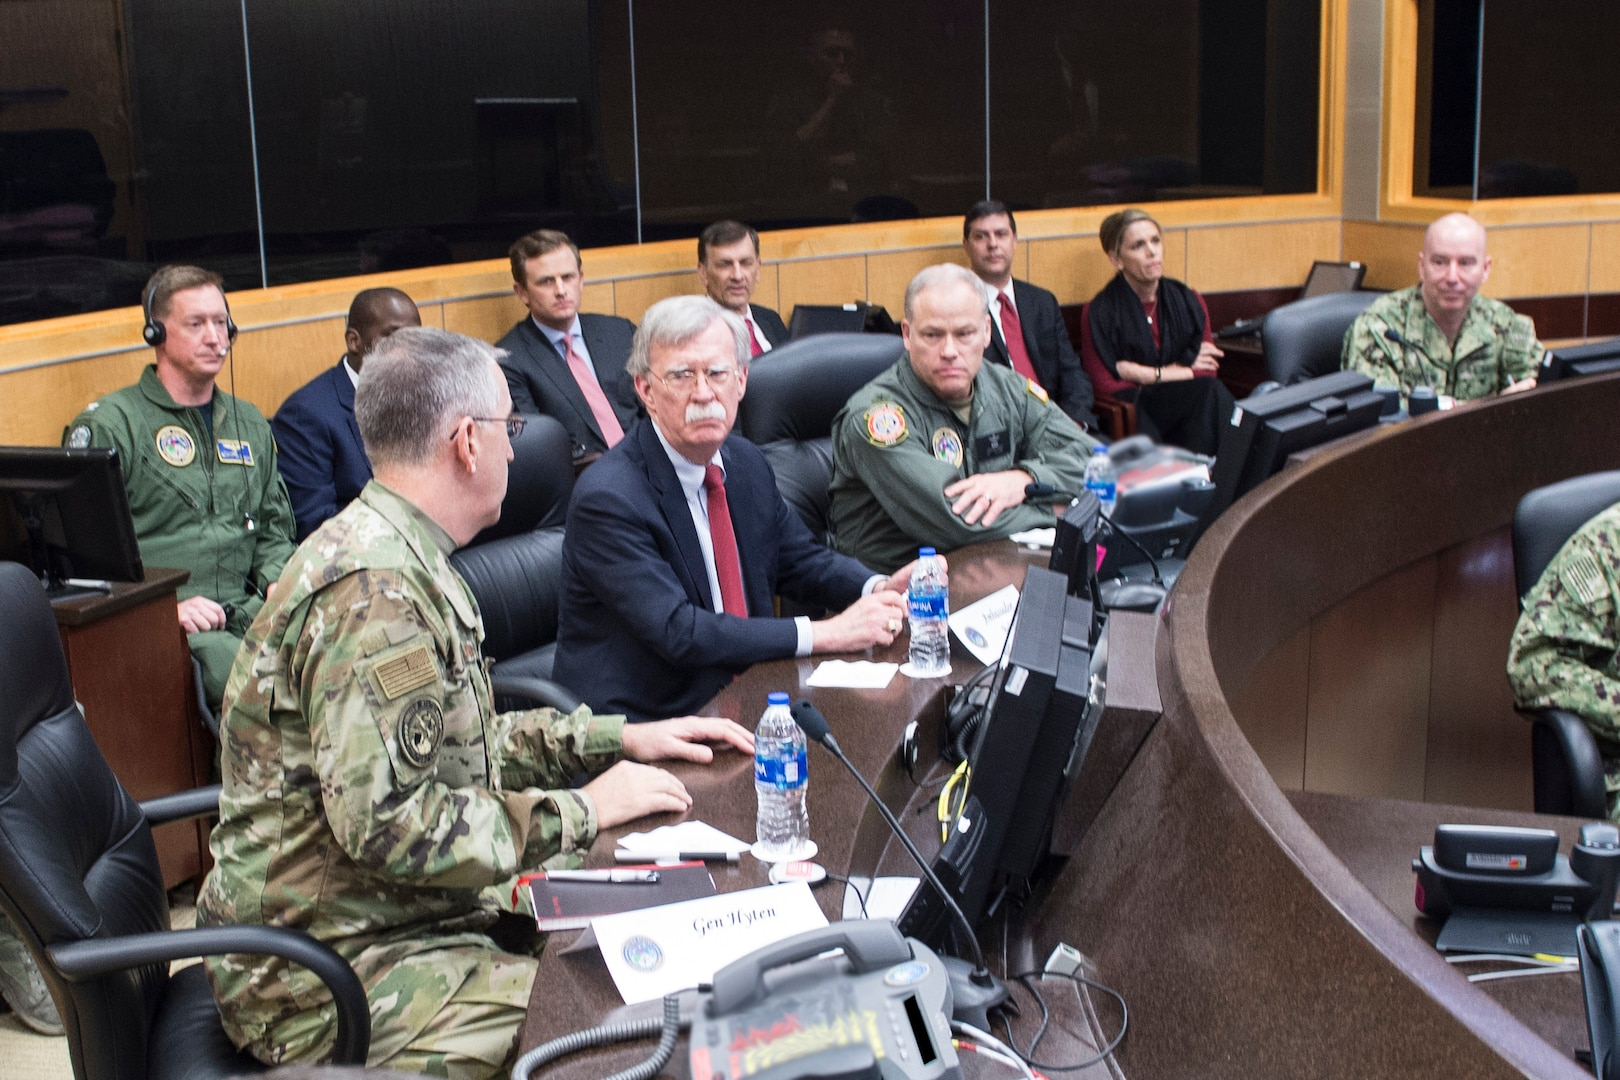 Ambassador John Bolton, National Security Advisor, receives a command and control update from Air Force Gen. John Hyten, commander of United States Strategic Command (USSTRATCOM), on the command's Battle Deck during his trip to USSTRATCOM, Offutt Air Force Base, Neb., Feb. 14, 2019. The Ambassador observed USSTRATCOM's combat-ready force, engaged in discussions with senior leaders and thanked warfighters for their service to the nation. Bolton's visit also highlighted USSTRATCOM's critical role in the National Security Strategy. (U.S. Navy photo by Mass Communications Specialist Julie Matyascik)